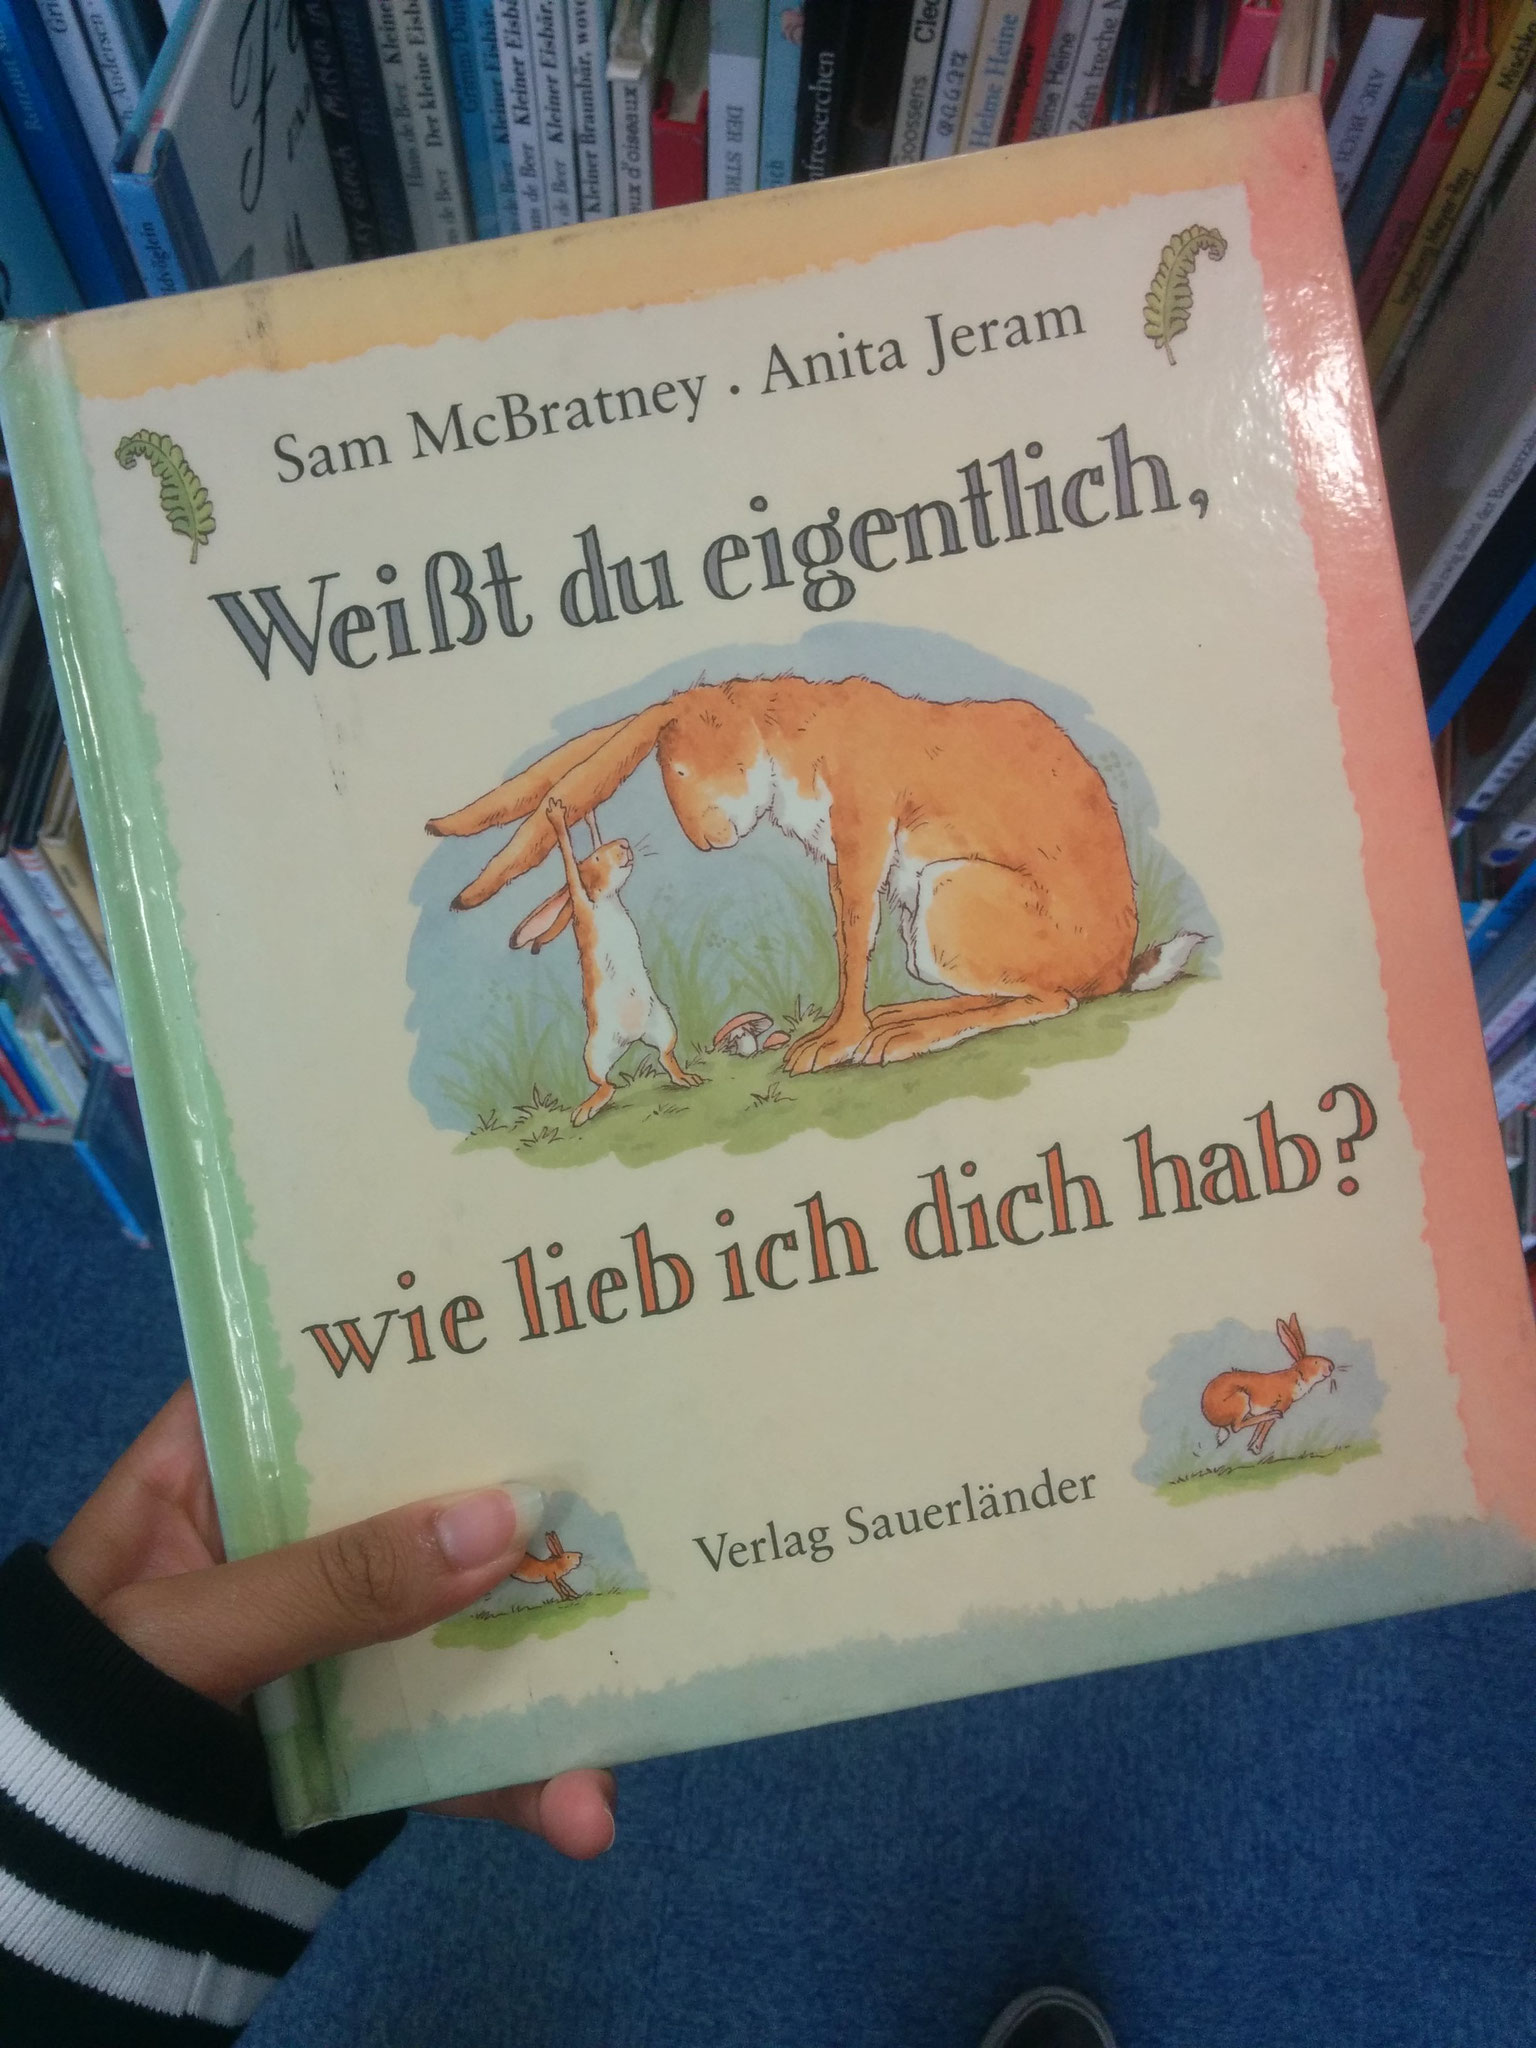 19 In the library there was a section for foreign language kids' books, guess what I found